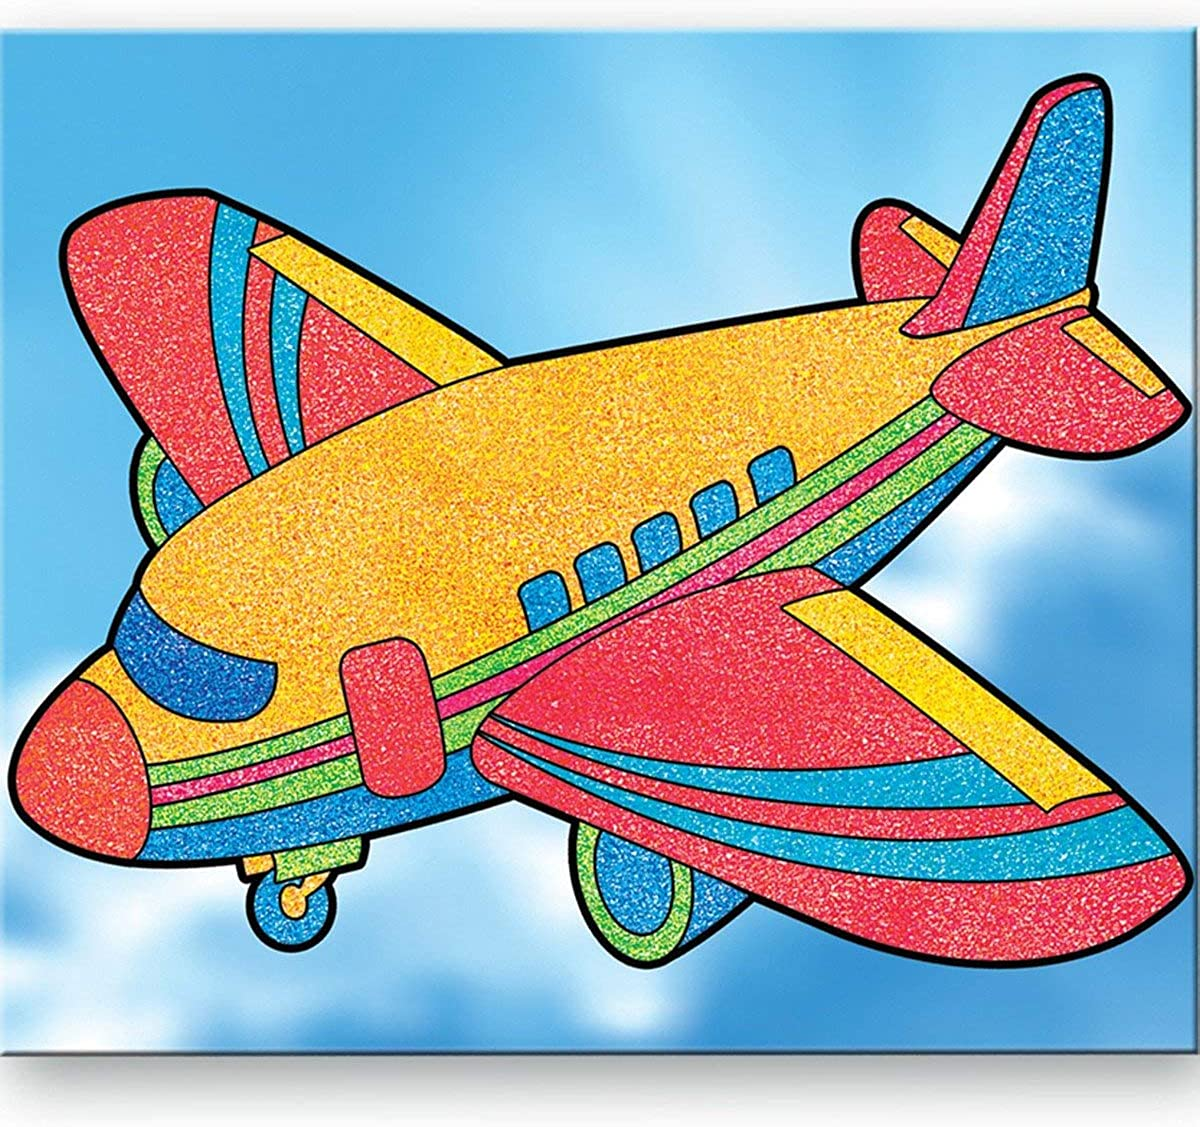 Toykraft Craft Activity for 3 to 6 Years Old of Filling Sand On Pre-Glued Templates to Get 3 Sand Pictures of Different Ships Sand Art Pictures Ships